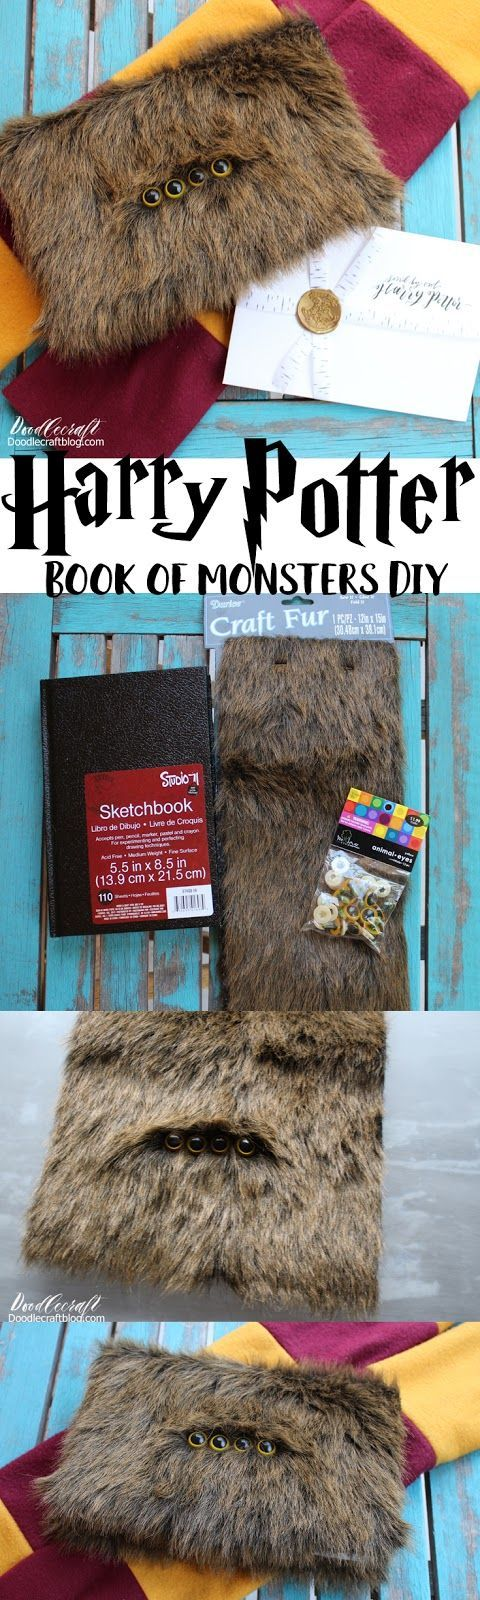 Harry Potter Monster Book of Monsters Book